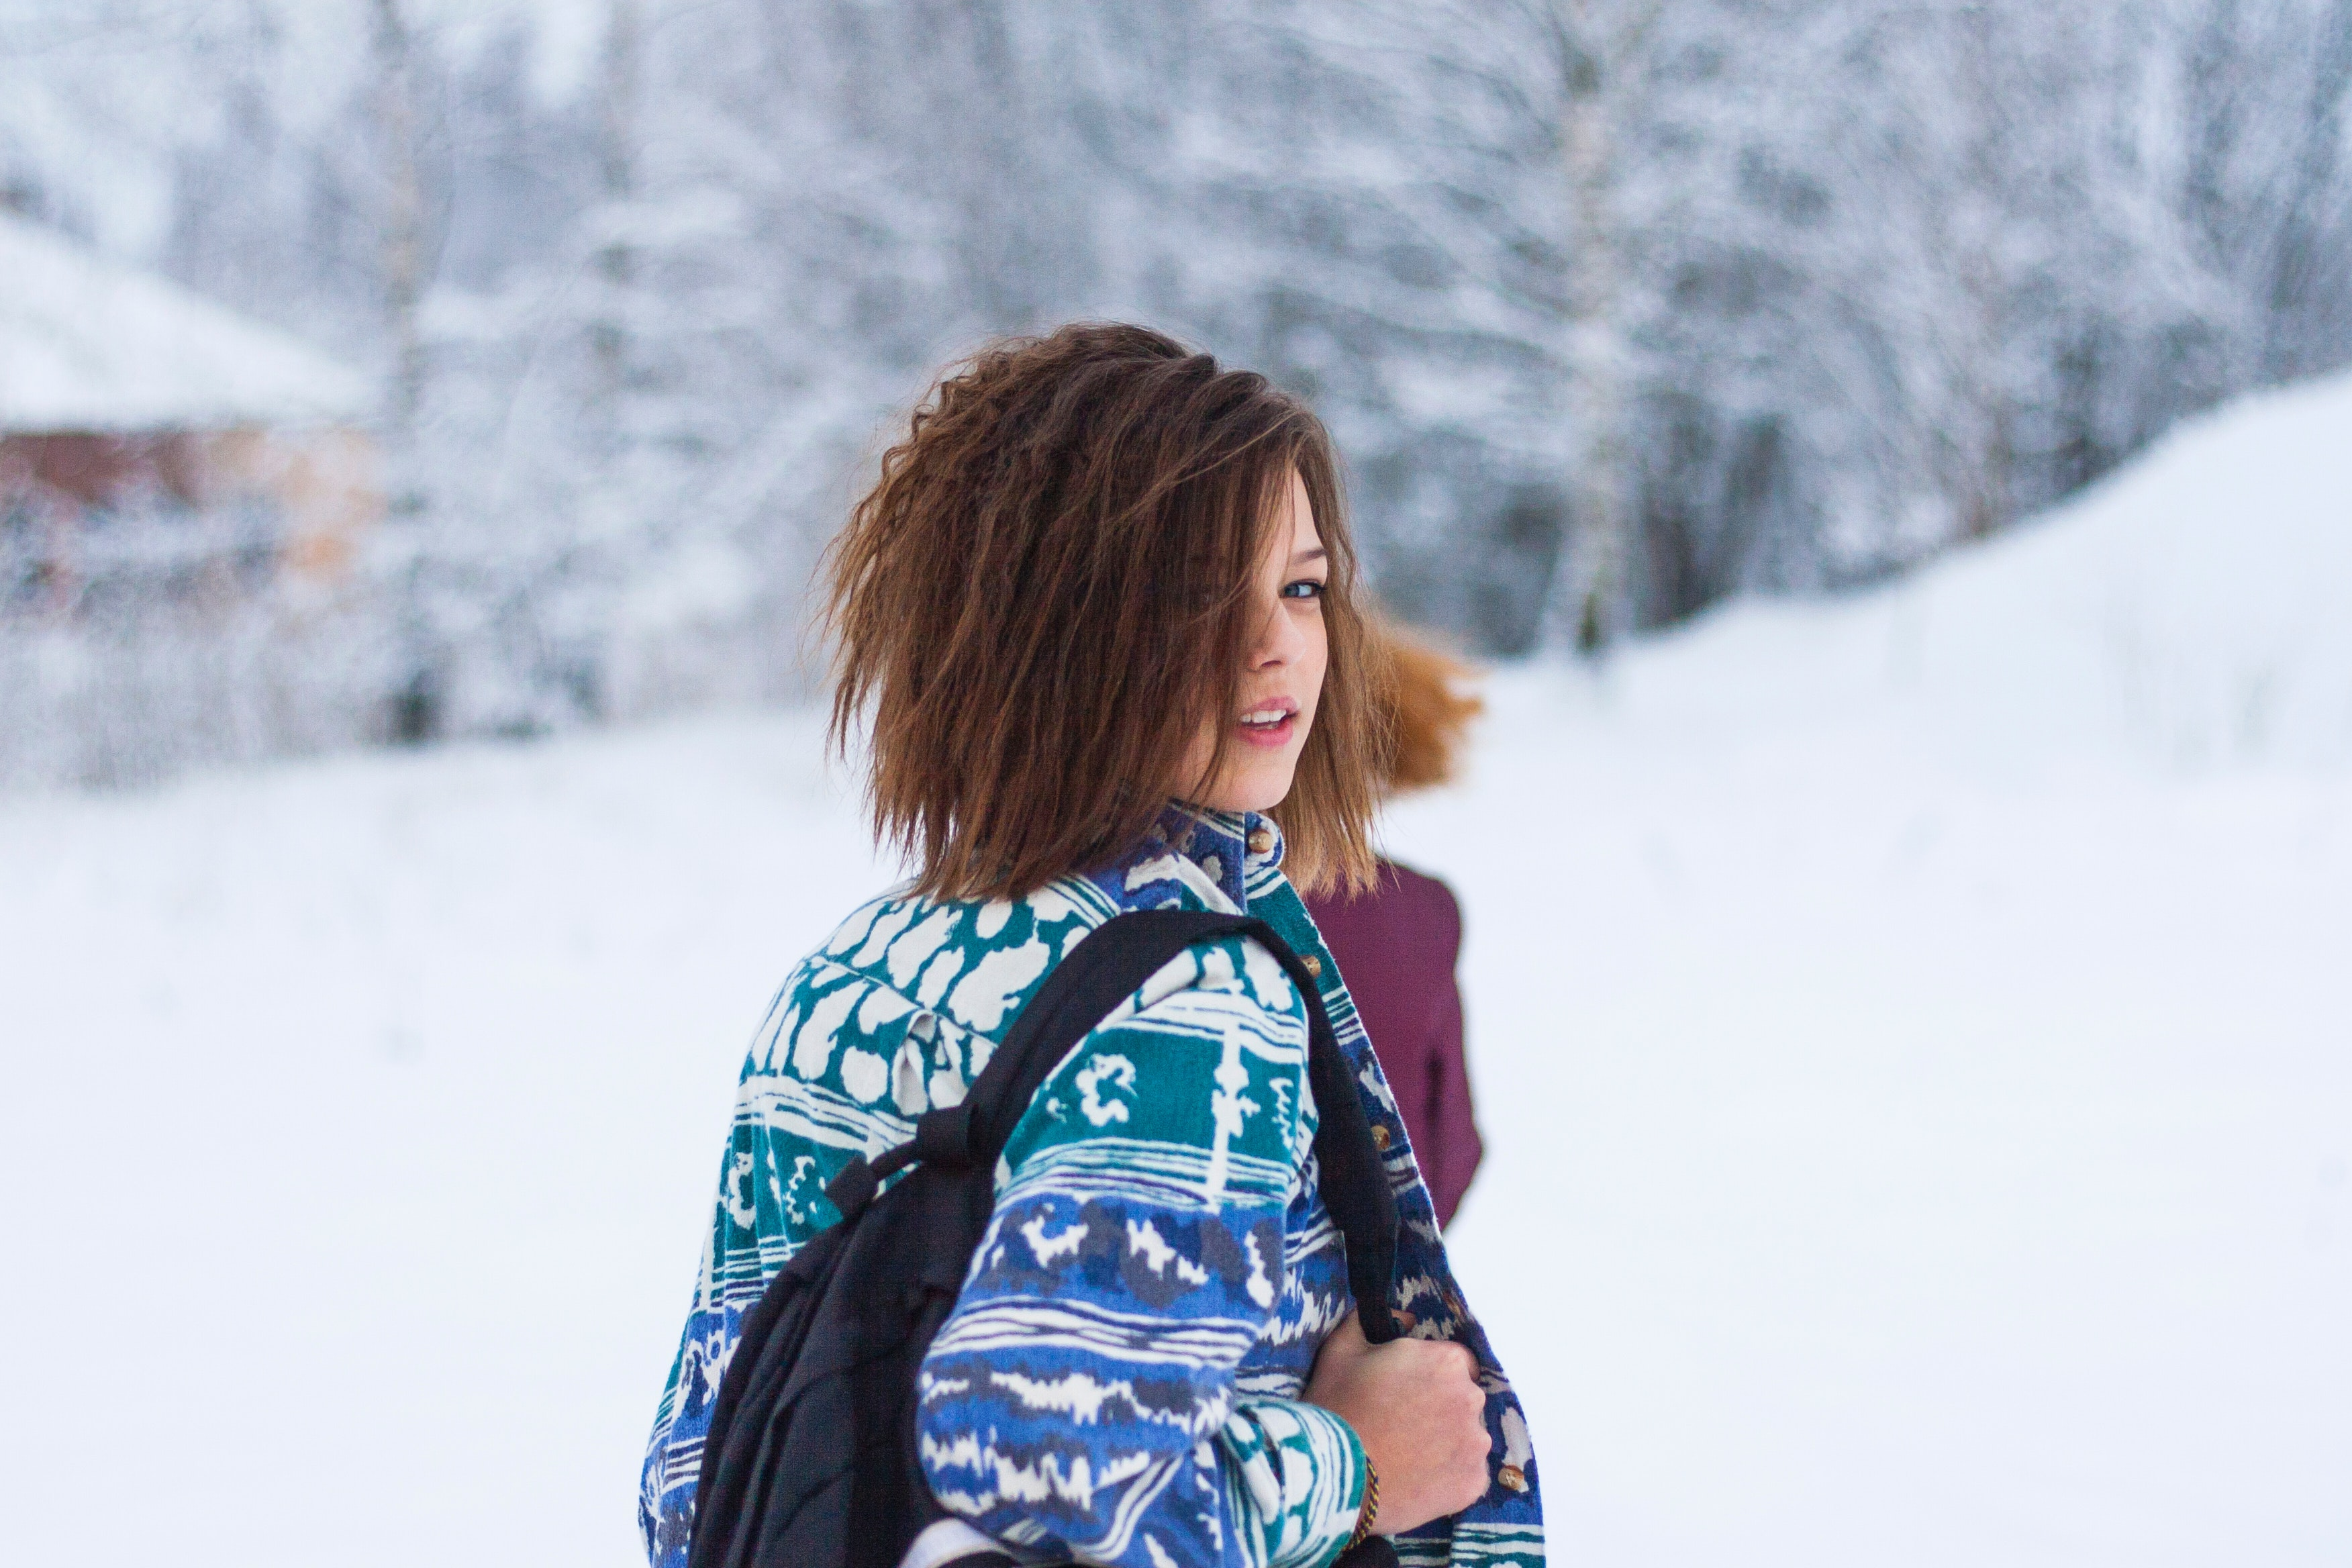 Selective Focus Portrait Photograph of Woman Wearing Blue, Green, and White Tribal Jacket and Black Backpack Outfit, Outdoors, Young, Woman, Winter, HQ Photo